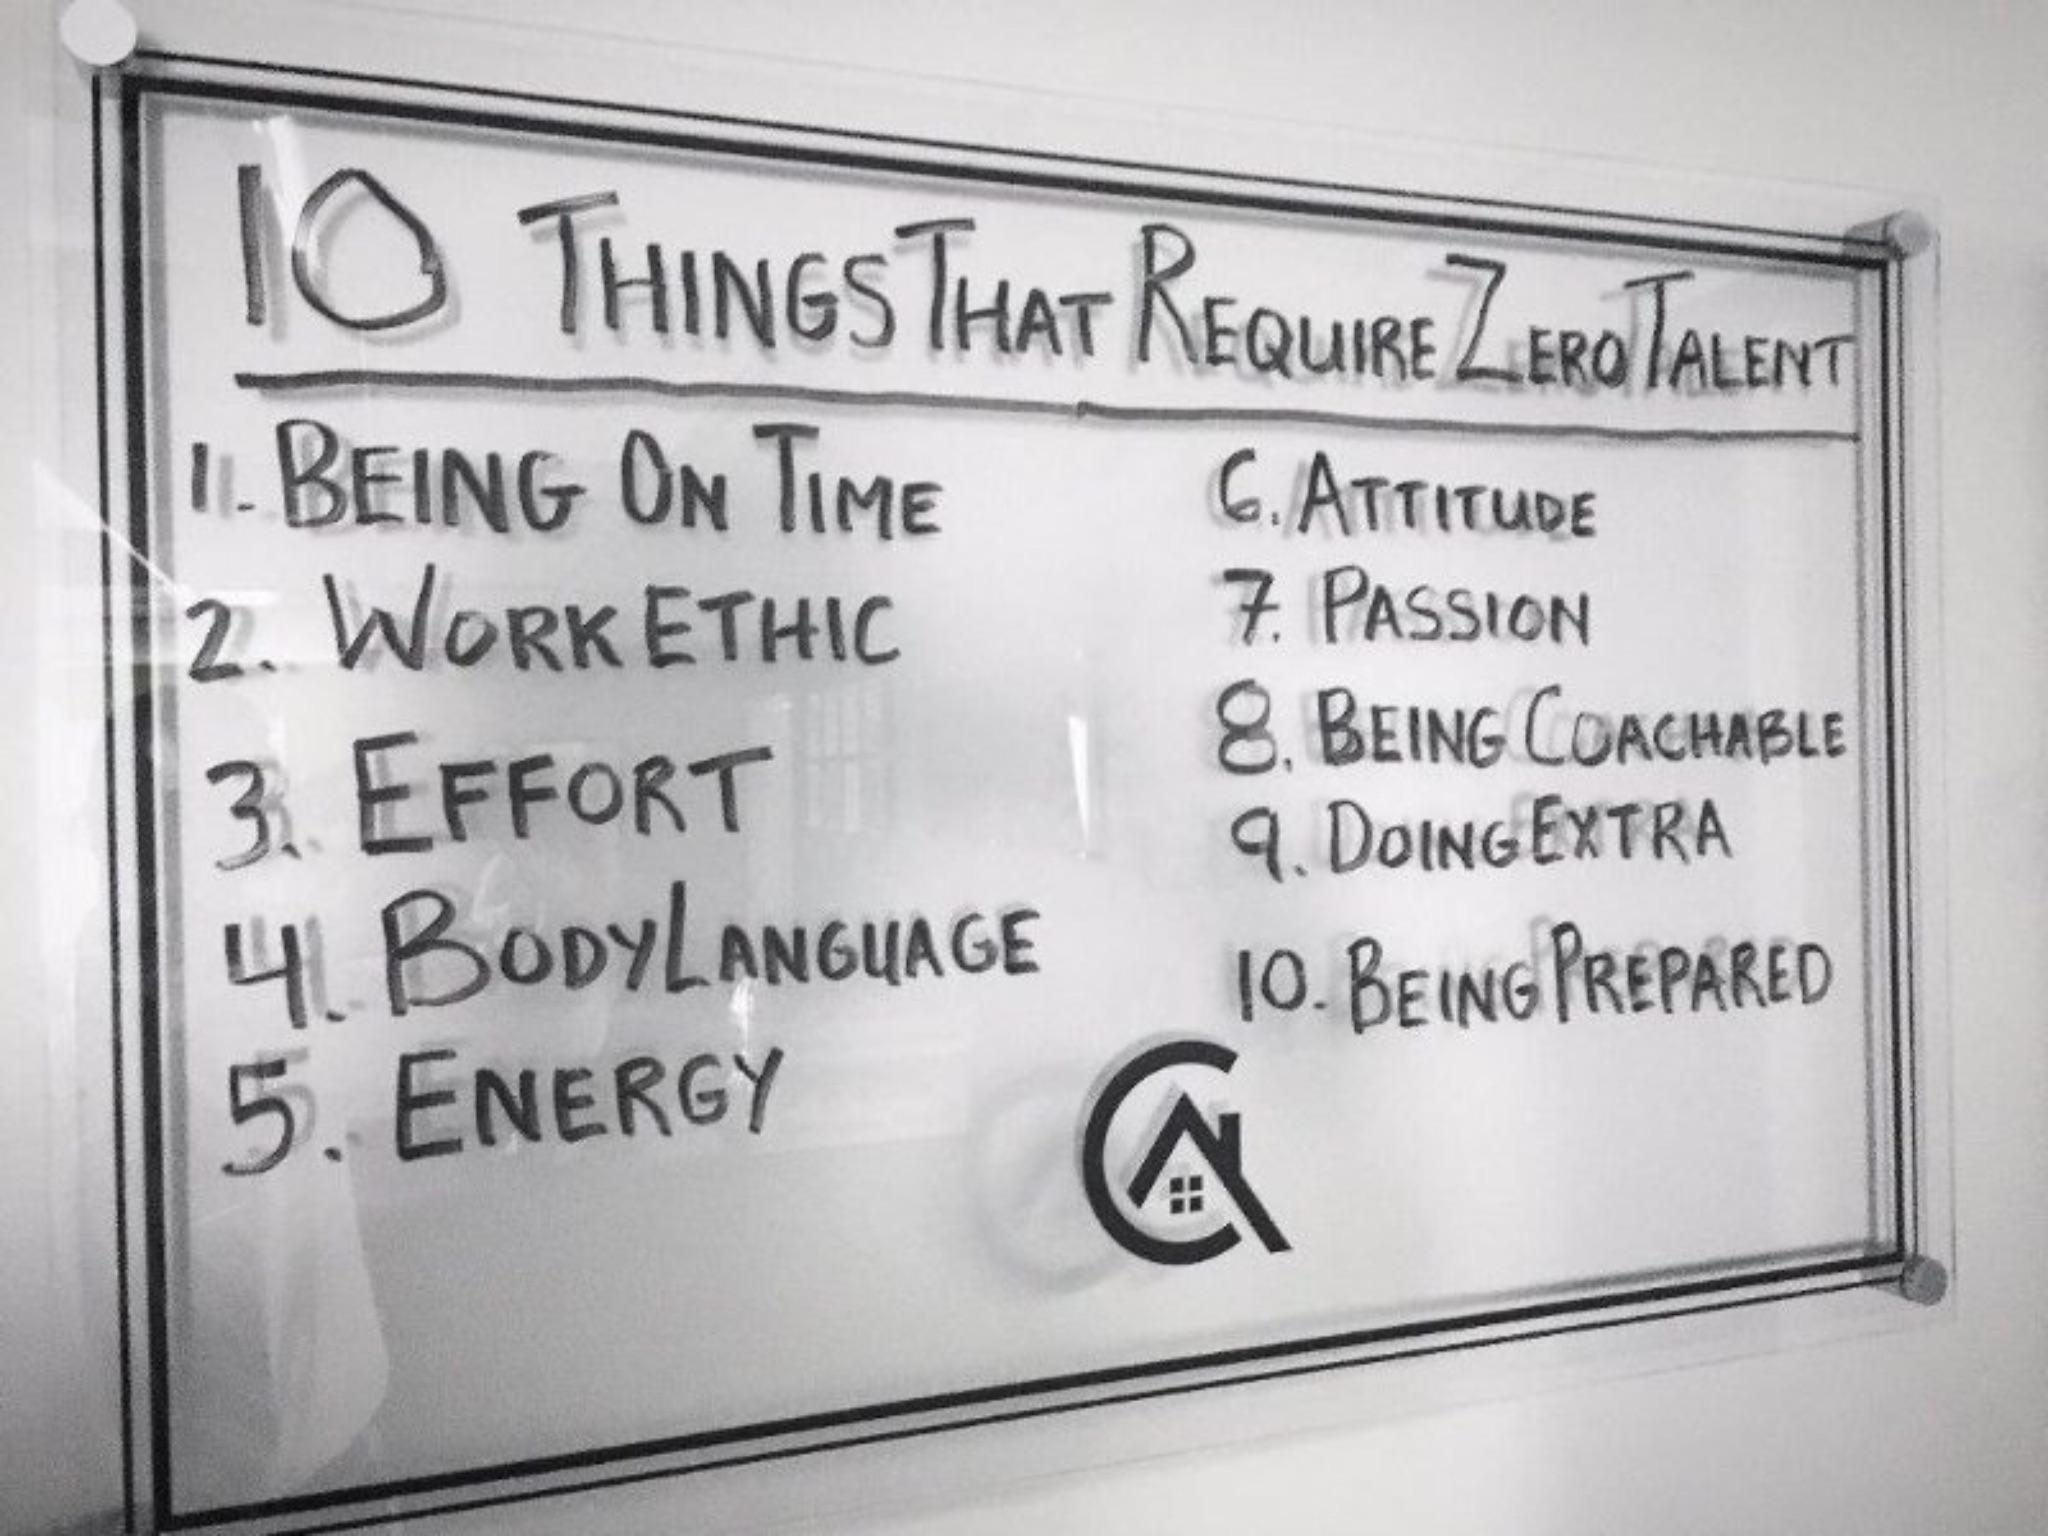 [Image] 10 Things that require no Talent